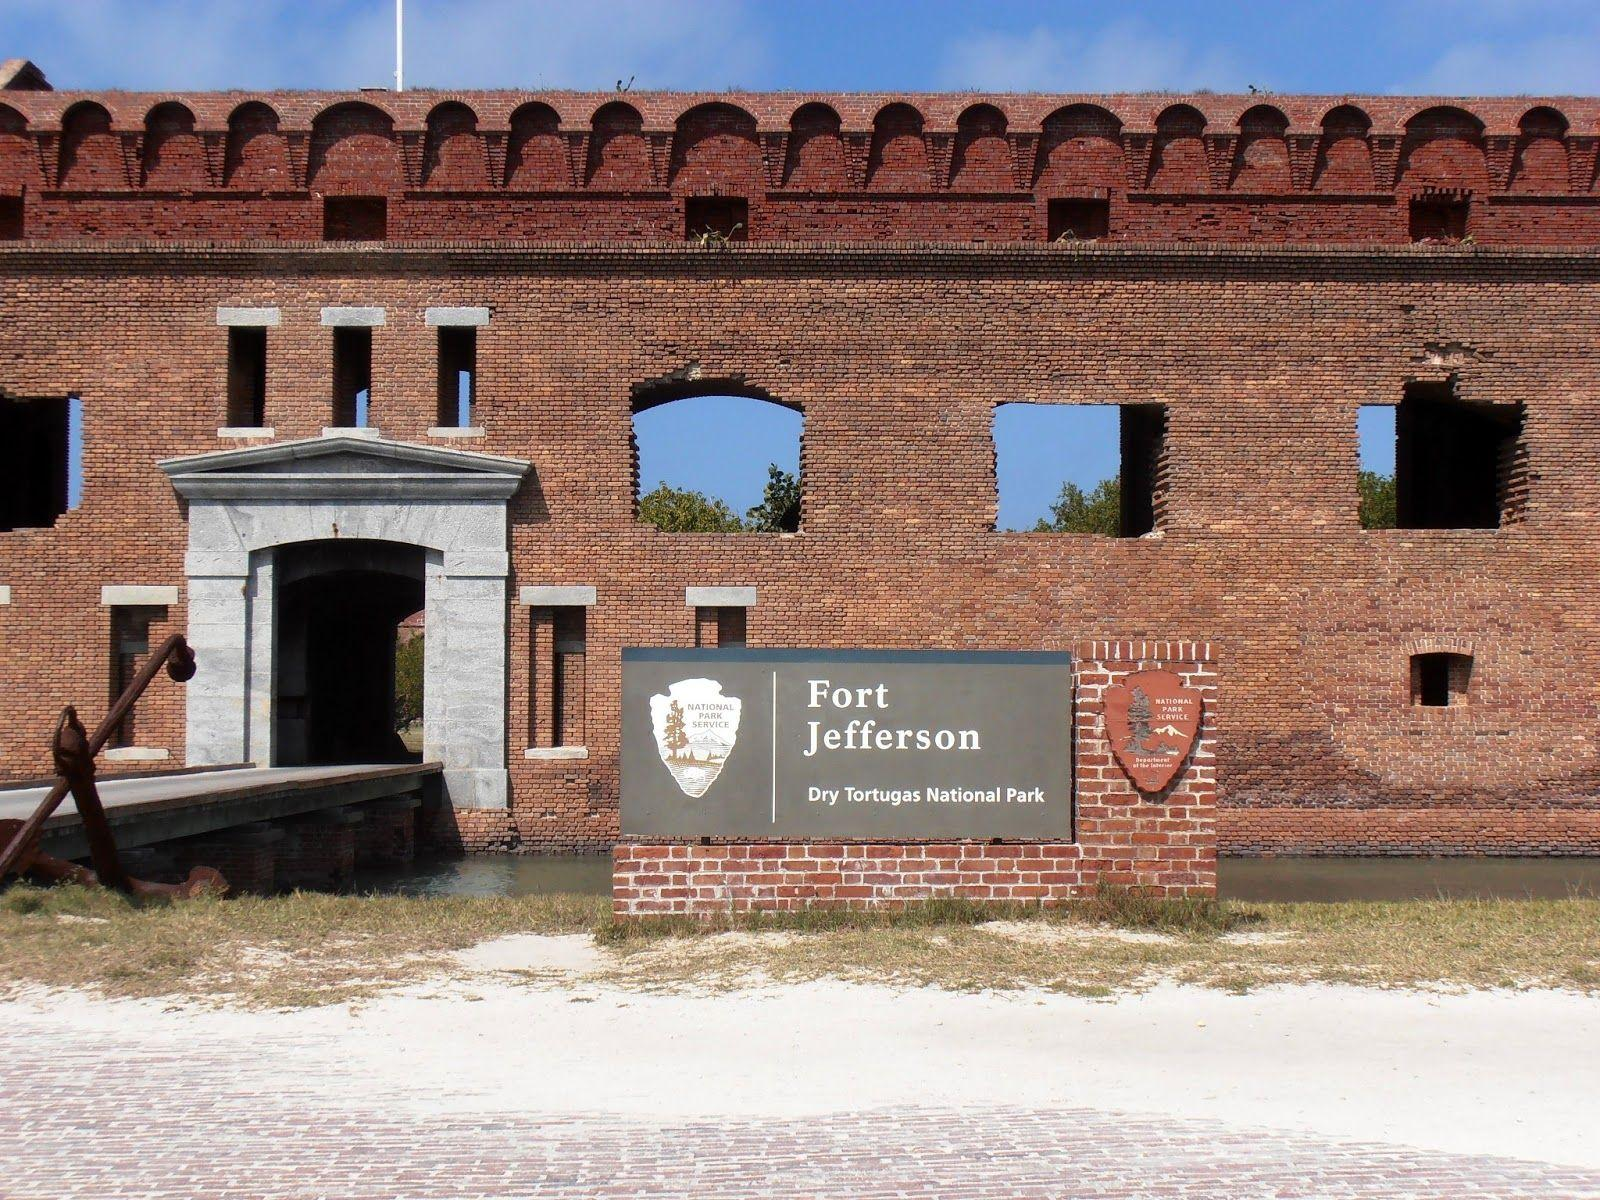 American Travel Journal: Dry Tortugas National Park